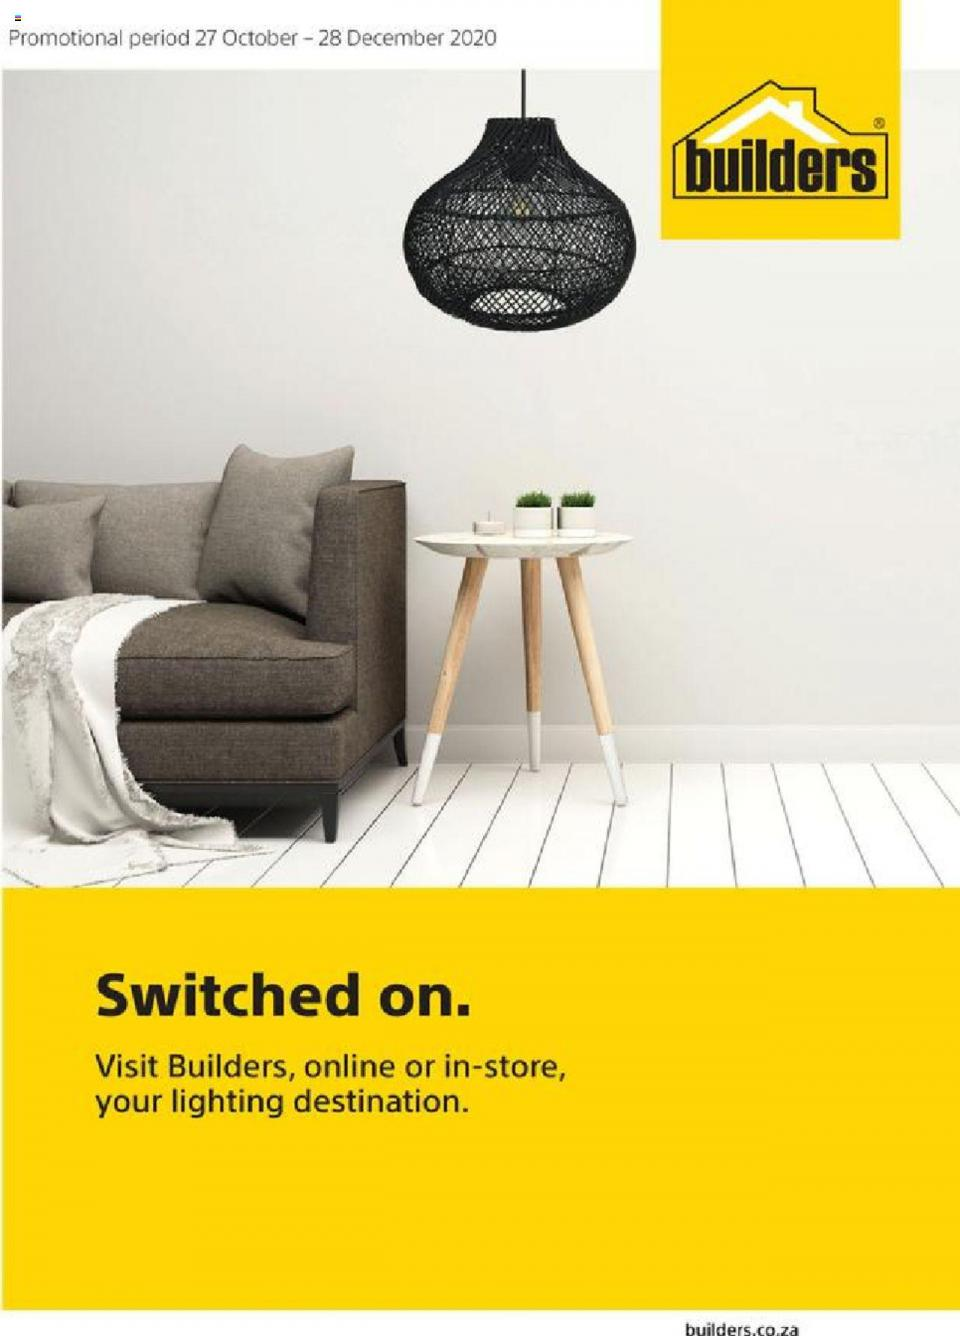 builders warehouse specials switched on 27 october 2020